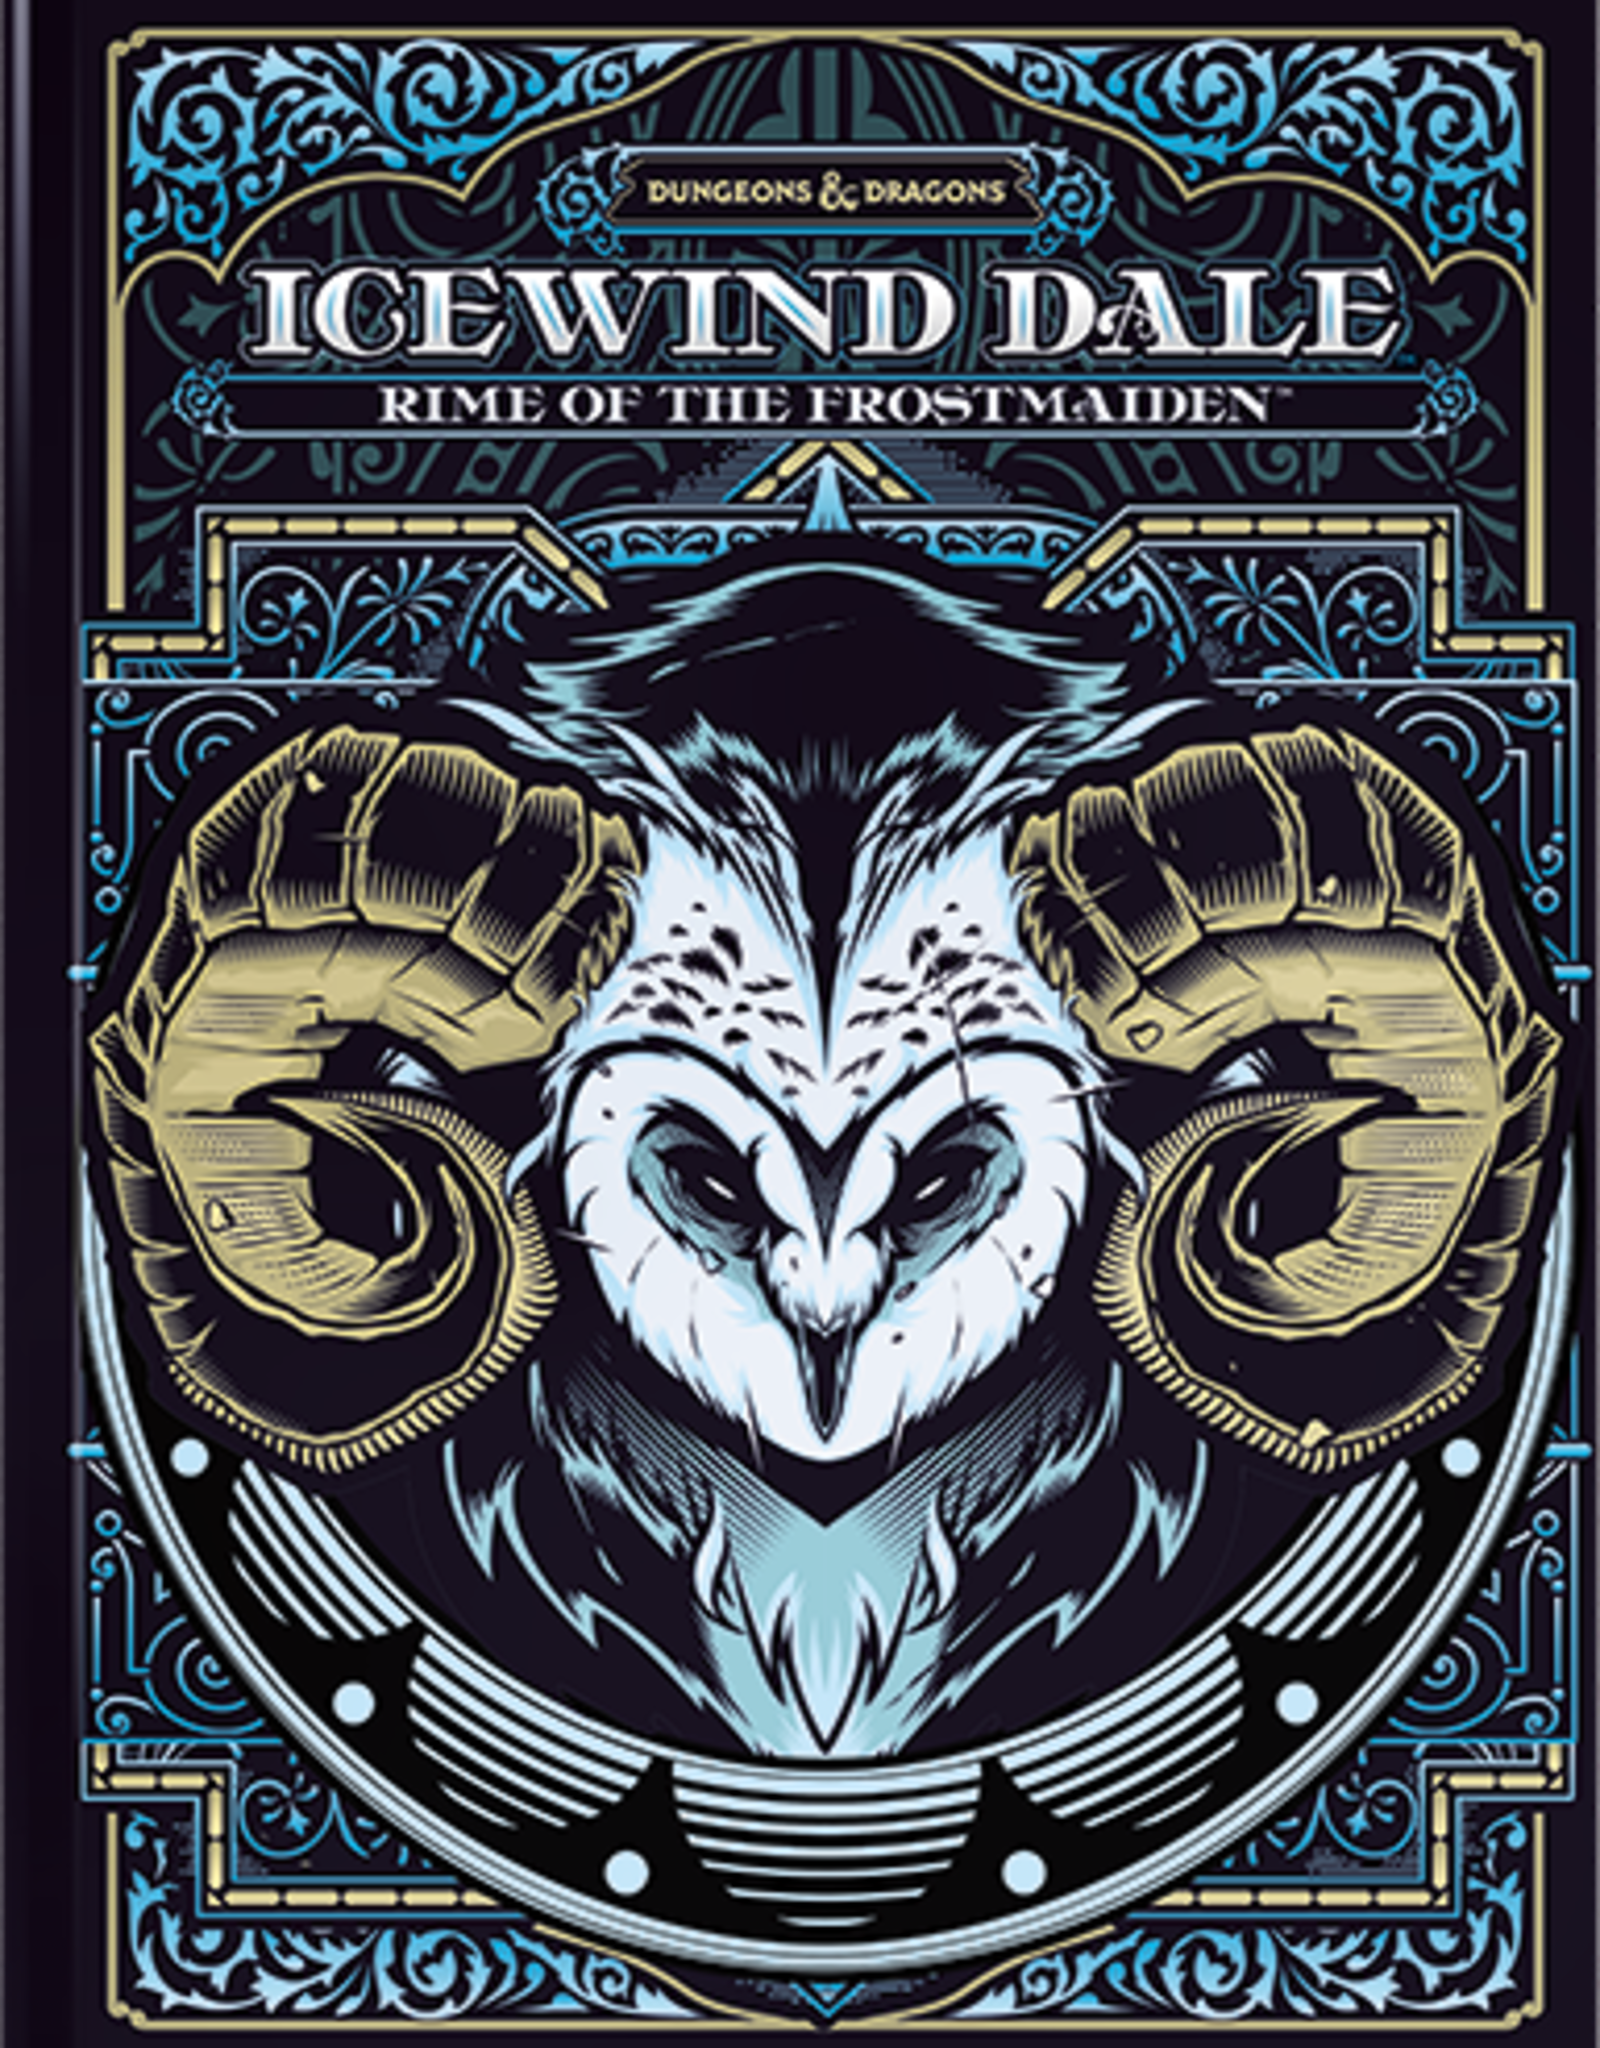 PREORDER Ice Wind Dale - Rime of the Frost Maiden Alternate Cover